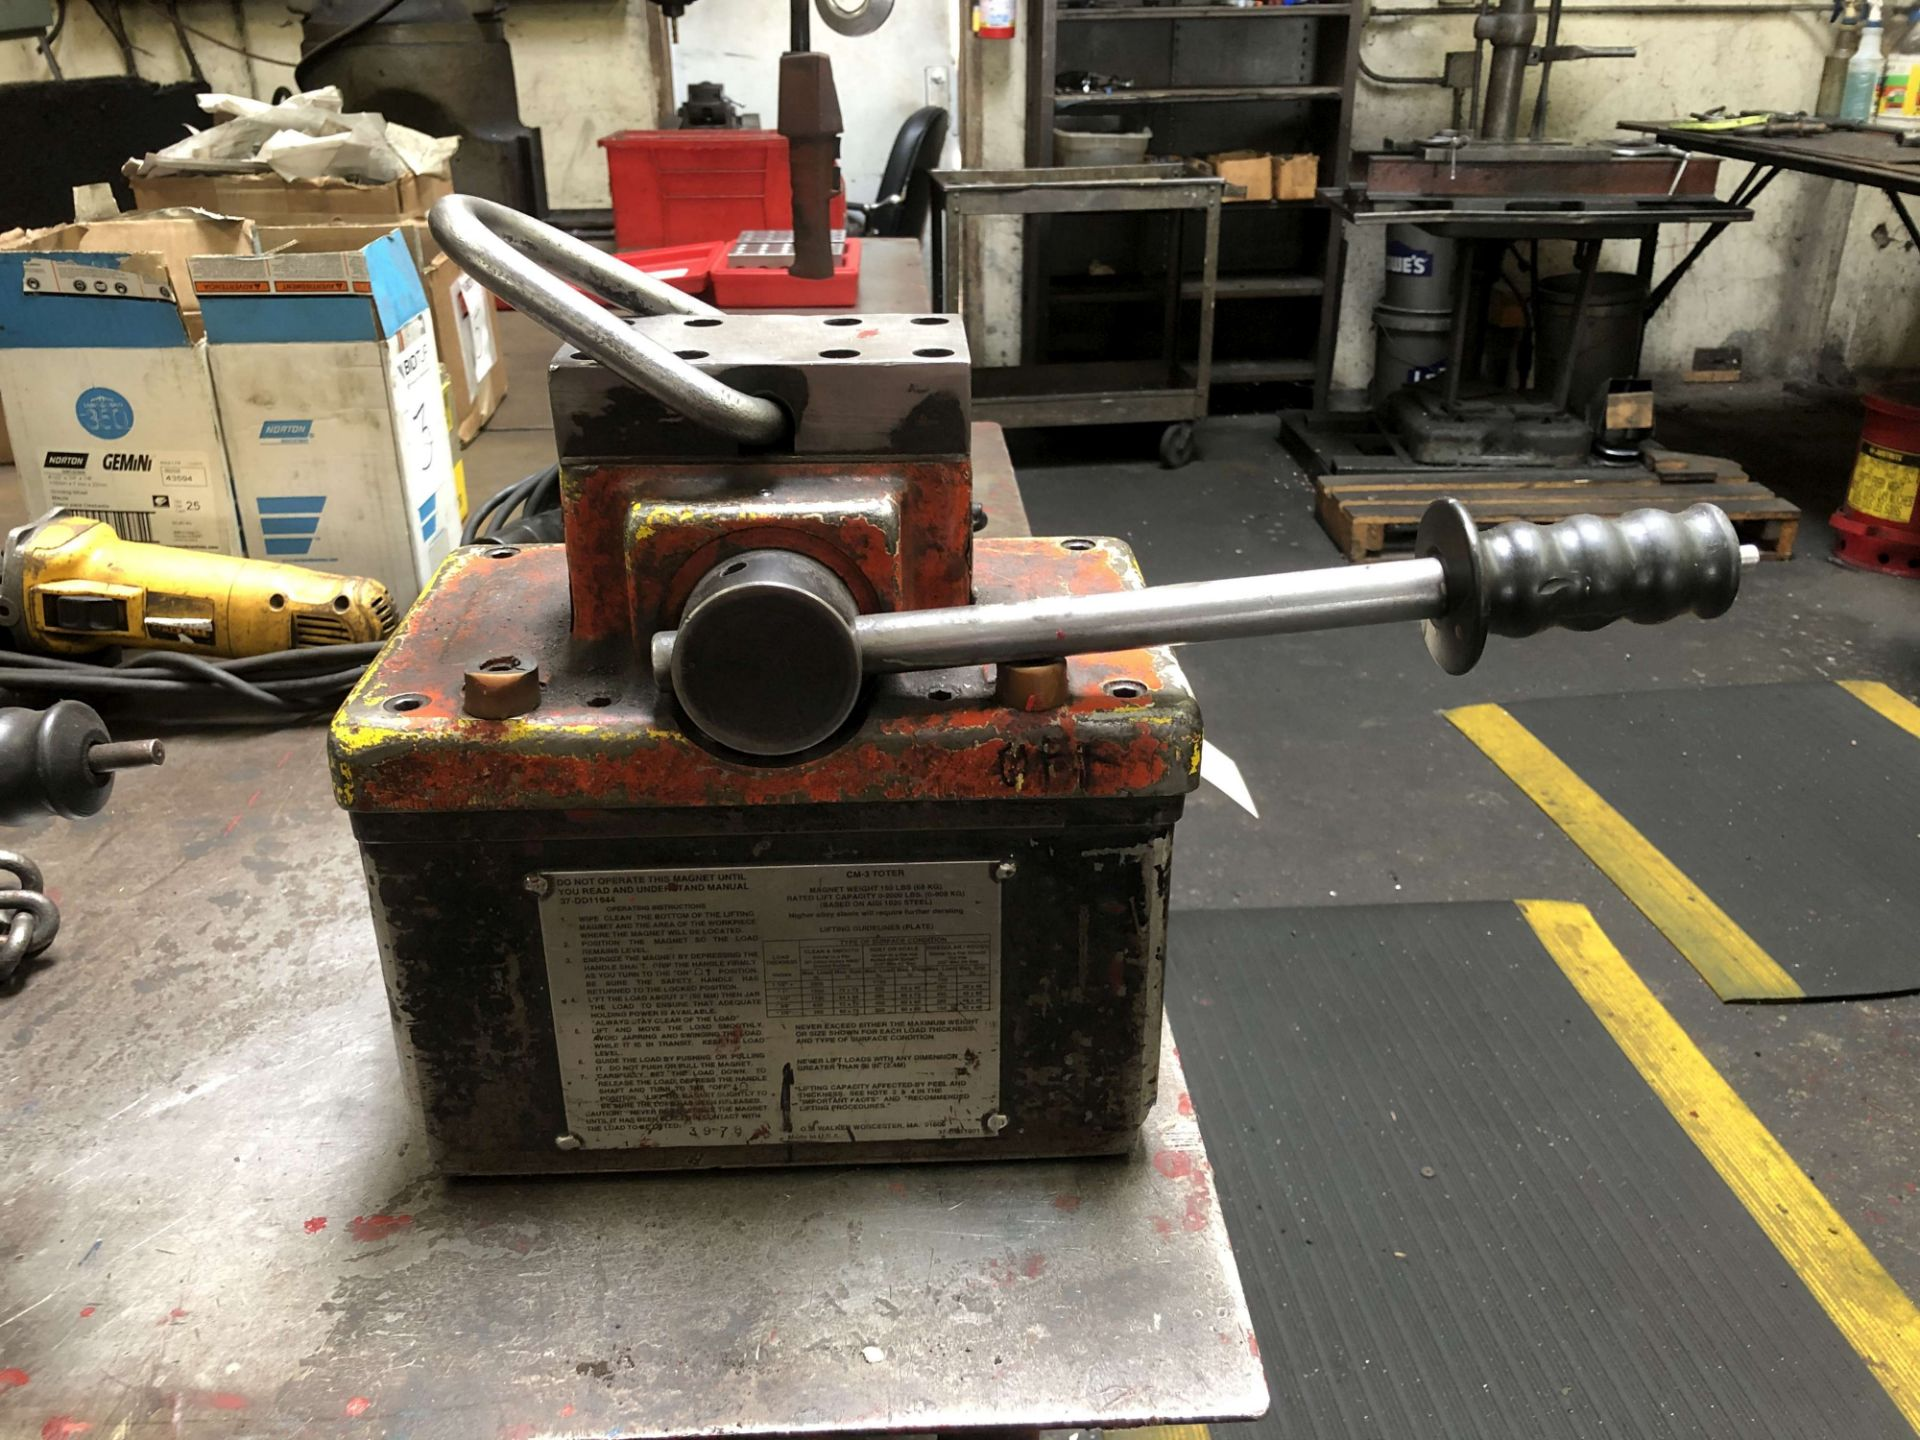 Lot 10 - OS Walker CM-3 Toter Permanent Lift Magnet, Rated Lift Capacity: 0-2,000 Lbs, Magnet Weight: 150